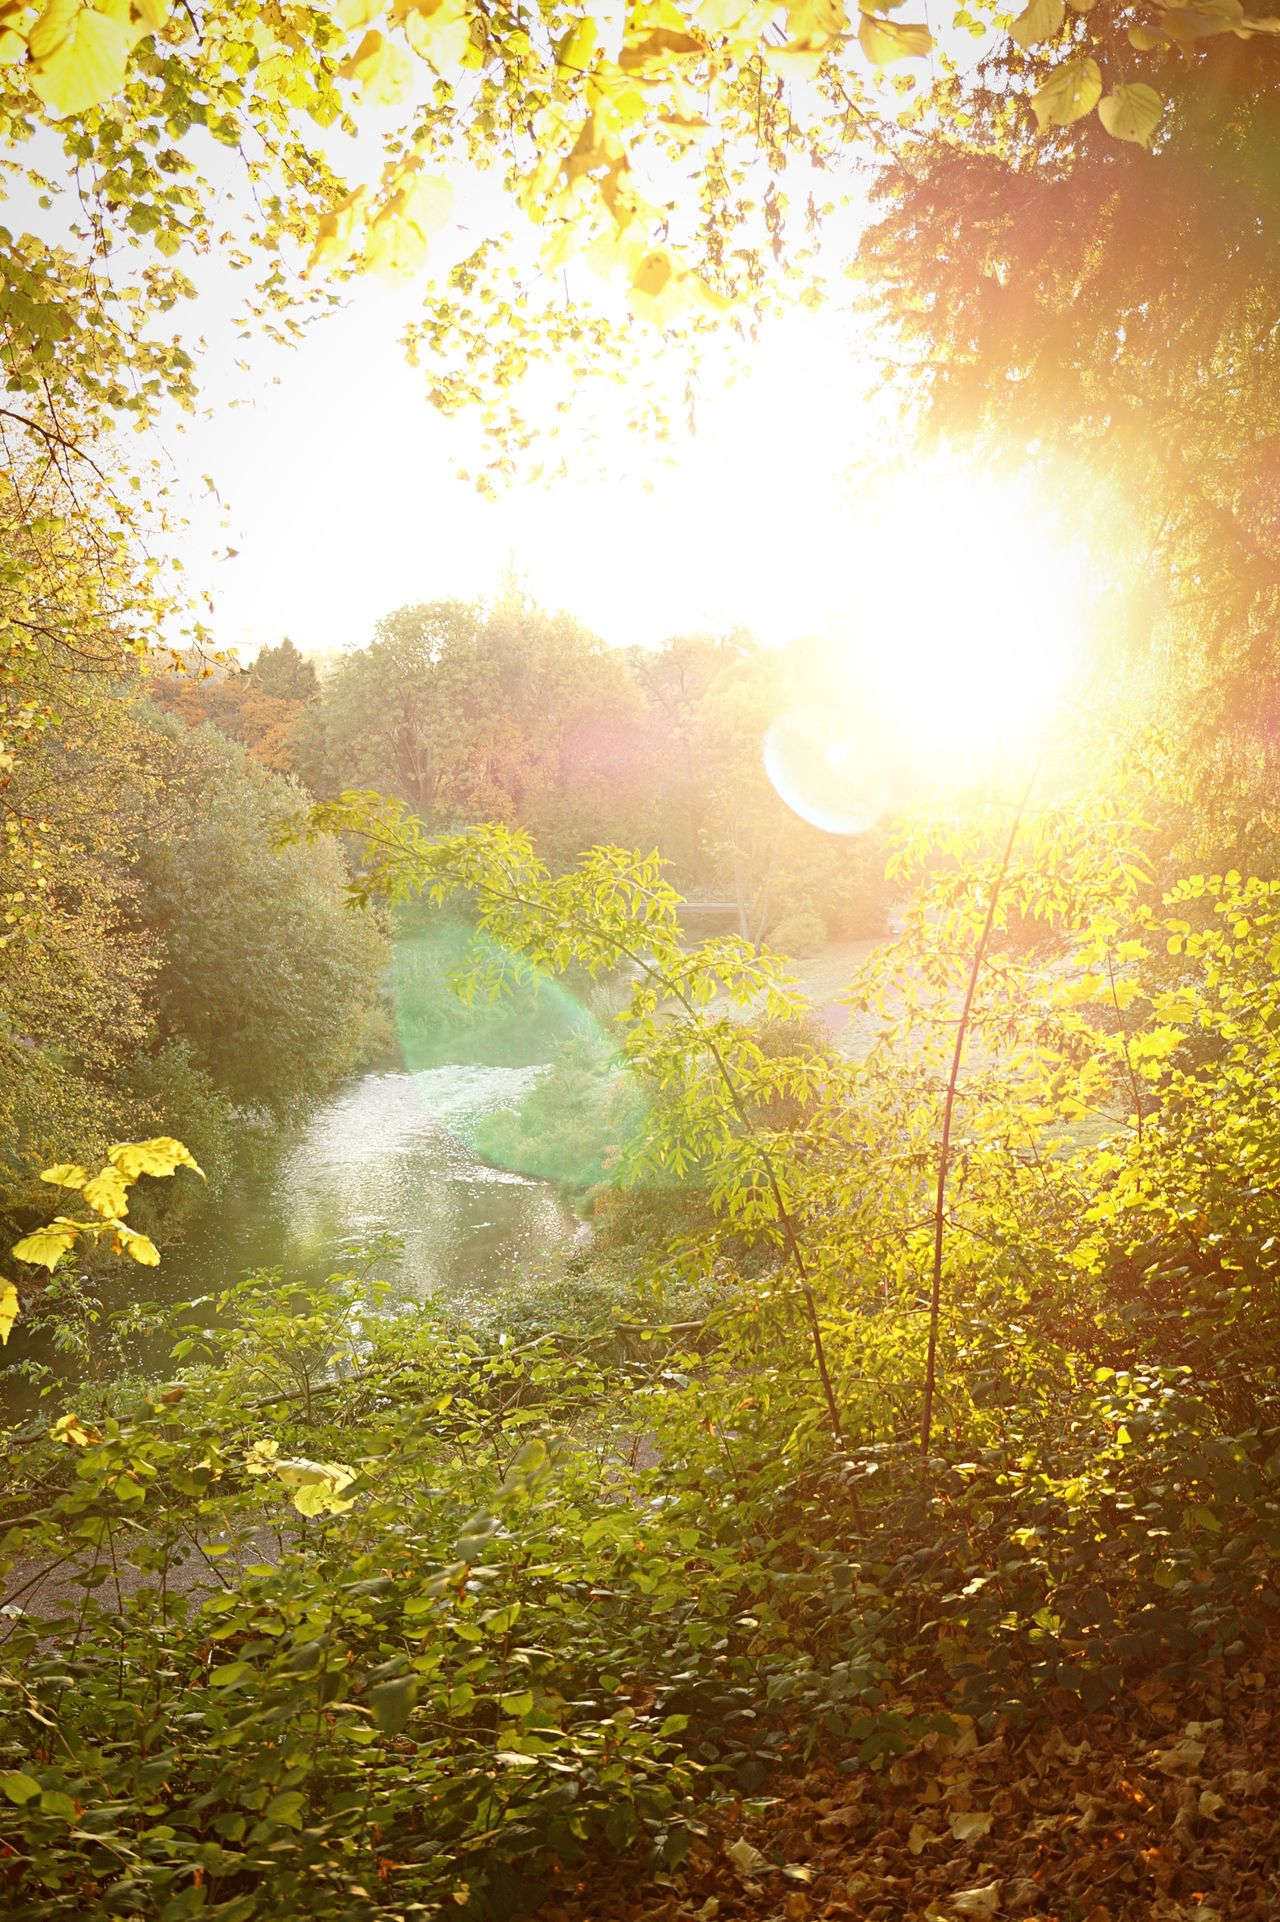 Ilmpark Weimar Sunrise Park Fall Beauty Autumn Beauty In Nature Nature Atmosphere Tranquility Light Day Sun Sunlight Sunny Outdoors Bushes Lens Flare The Great Outdoors With Adobe 43 Golden Moments Color Palette The Great Outdoors - 2017 EyeEm Awards